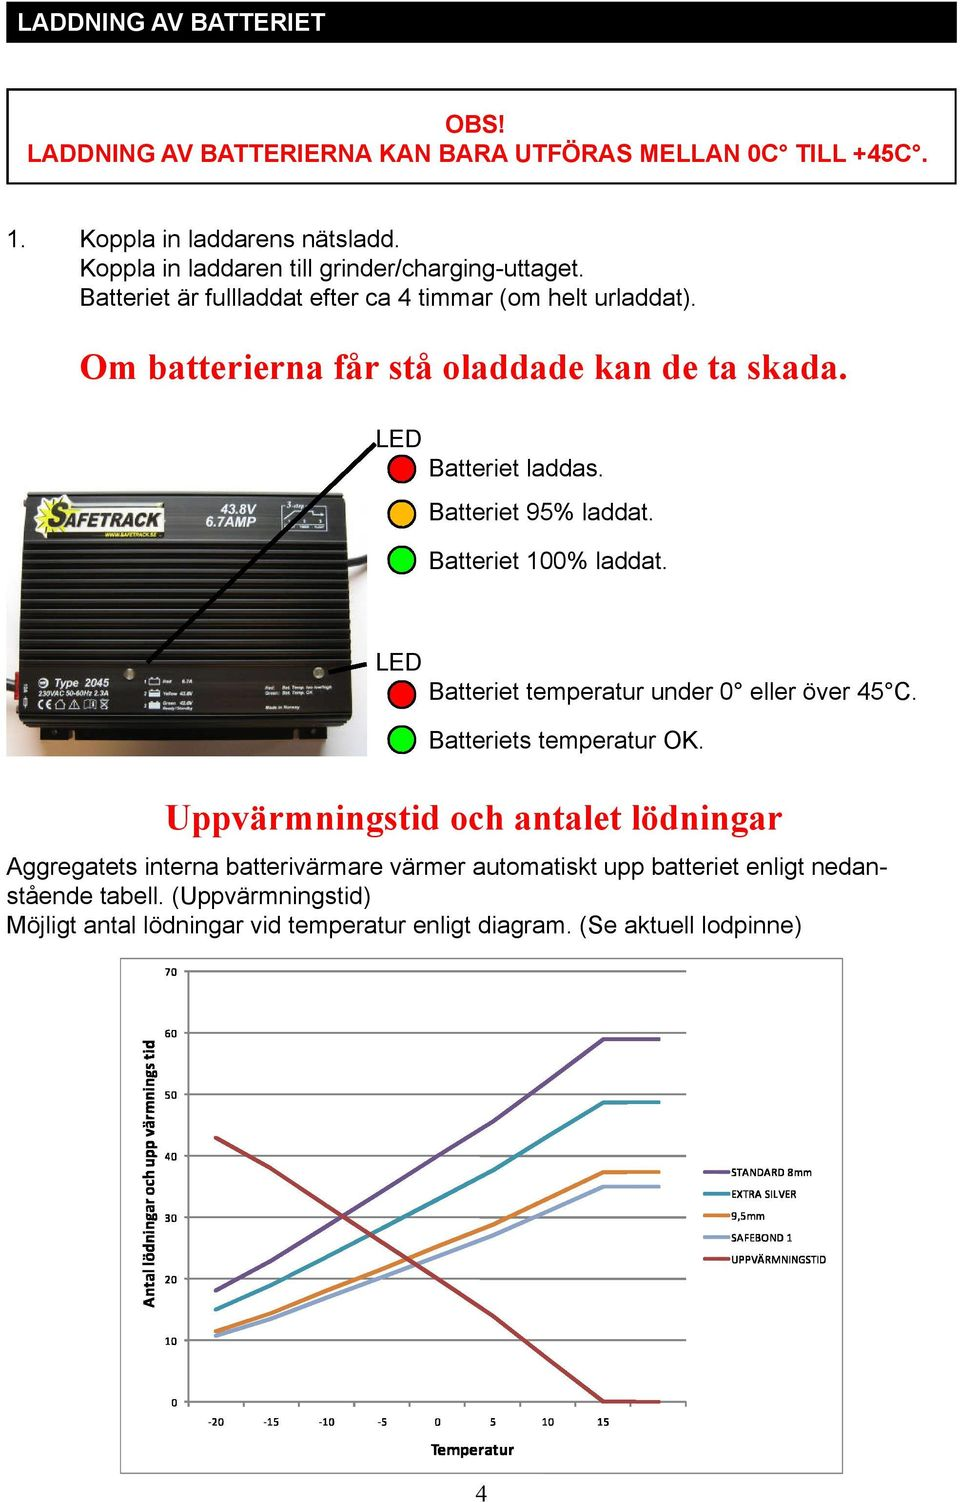 LED Batteriet laddas. Batteriet 95% laddat. Batteriet 100% laddat. LED Batteriet temperatur under 0 eller över 45 C. Batteriets temperatur OK.